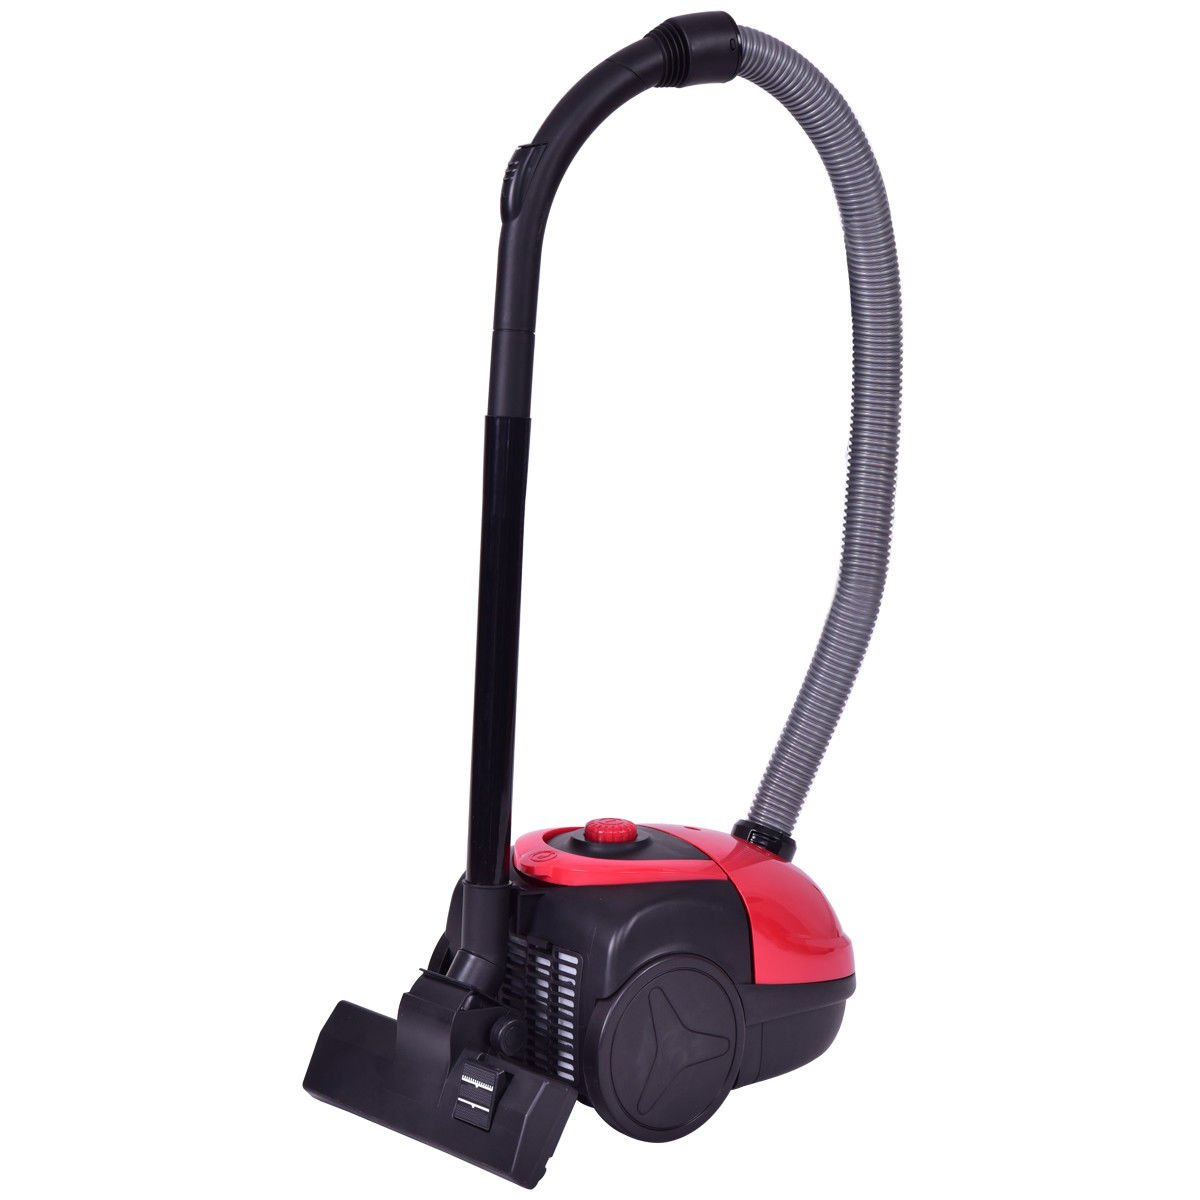 KCHEX>>>Vacuum Cleaner Canister Bagged Cord Rewind Carpet Hard Floor w Washable Filter>This is Our Upgraded Canister Vacuum. Powered by 1200-Watts, This Portable and Compact Vacuum Offers